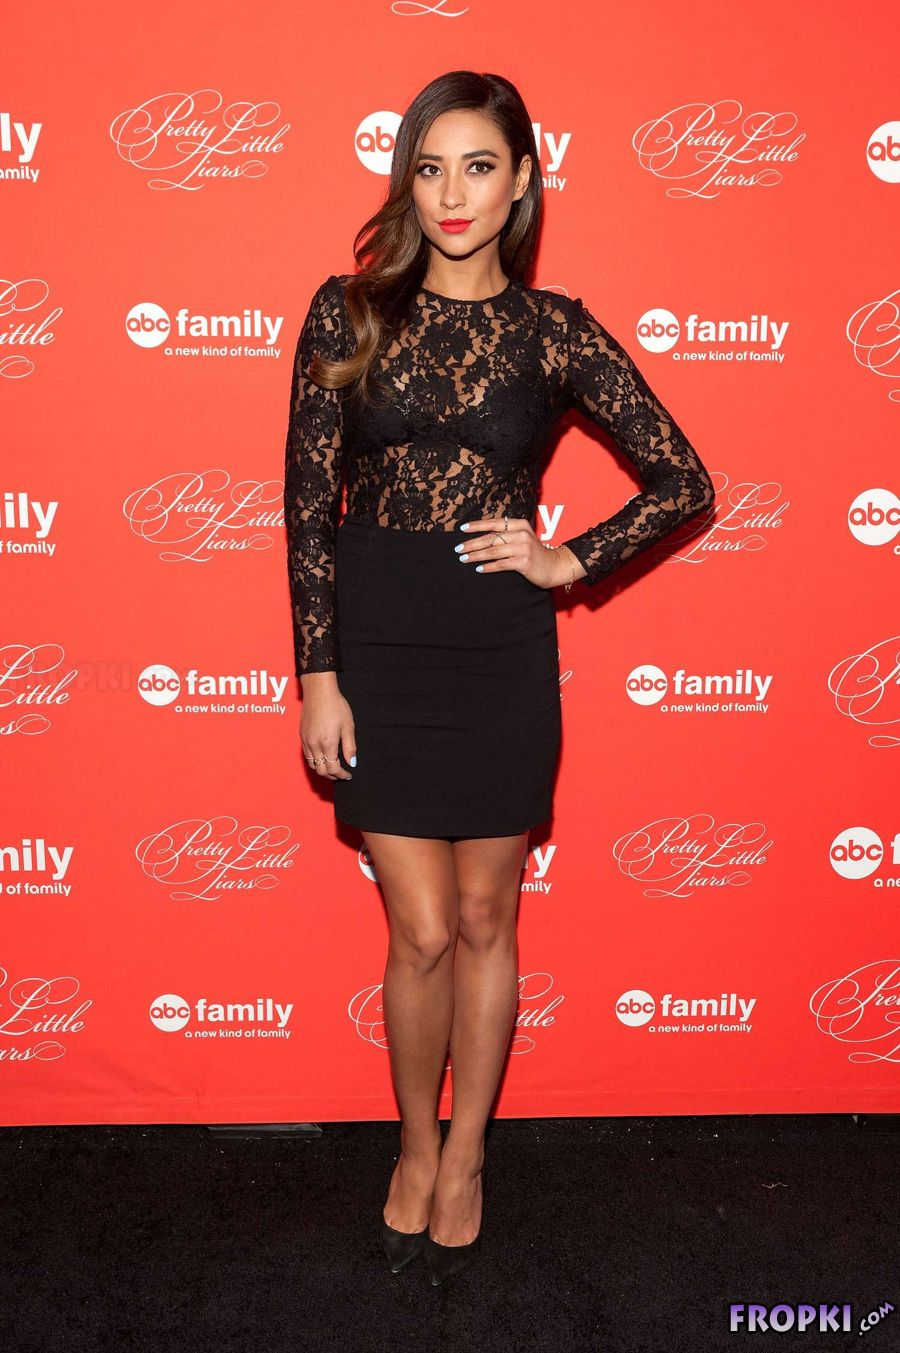 Shay Mitchell in Bra Enhancing Top in Premiere